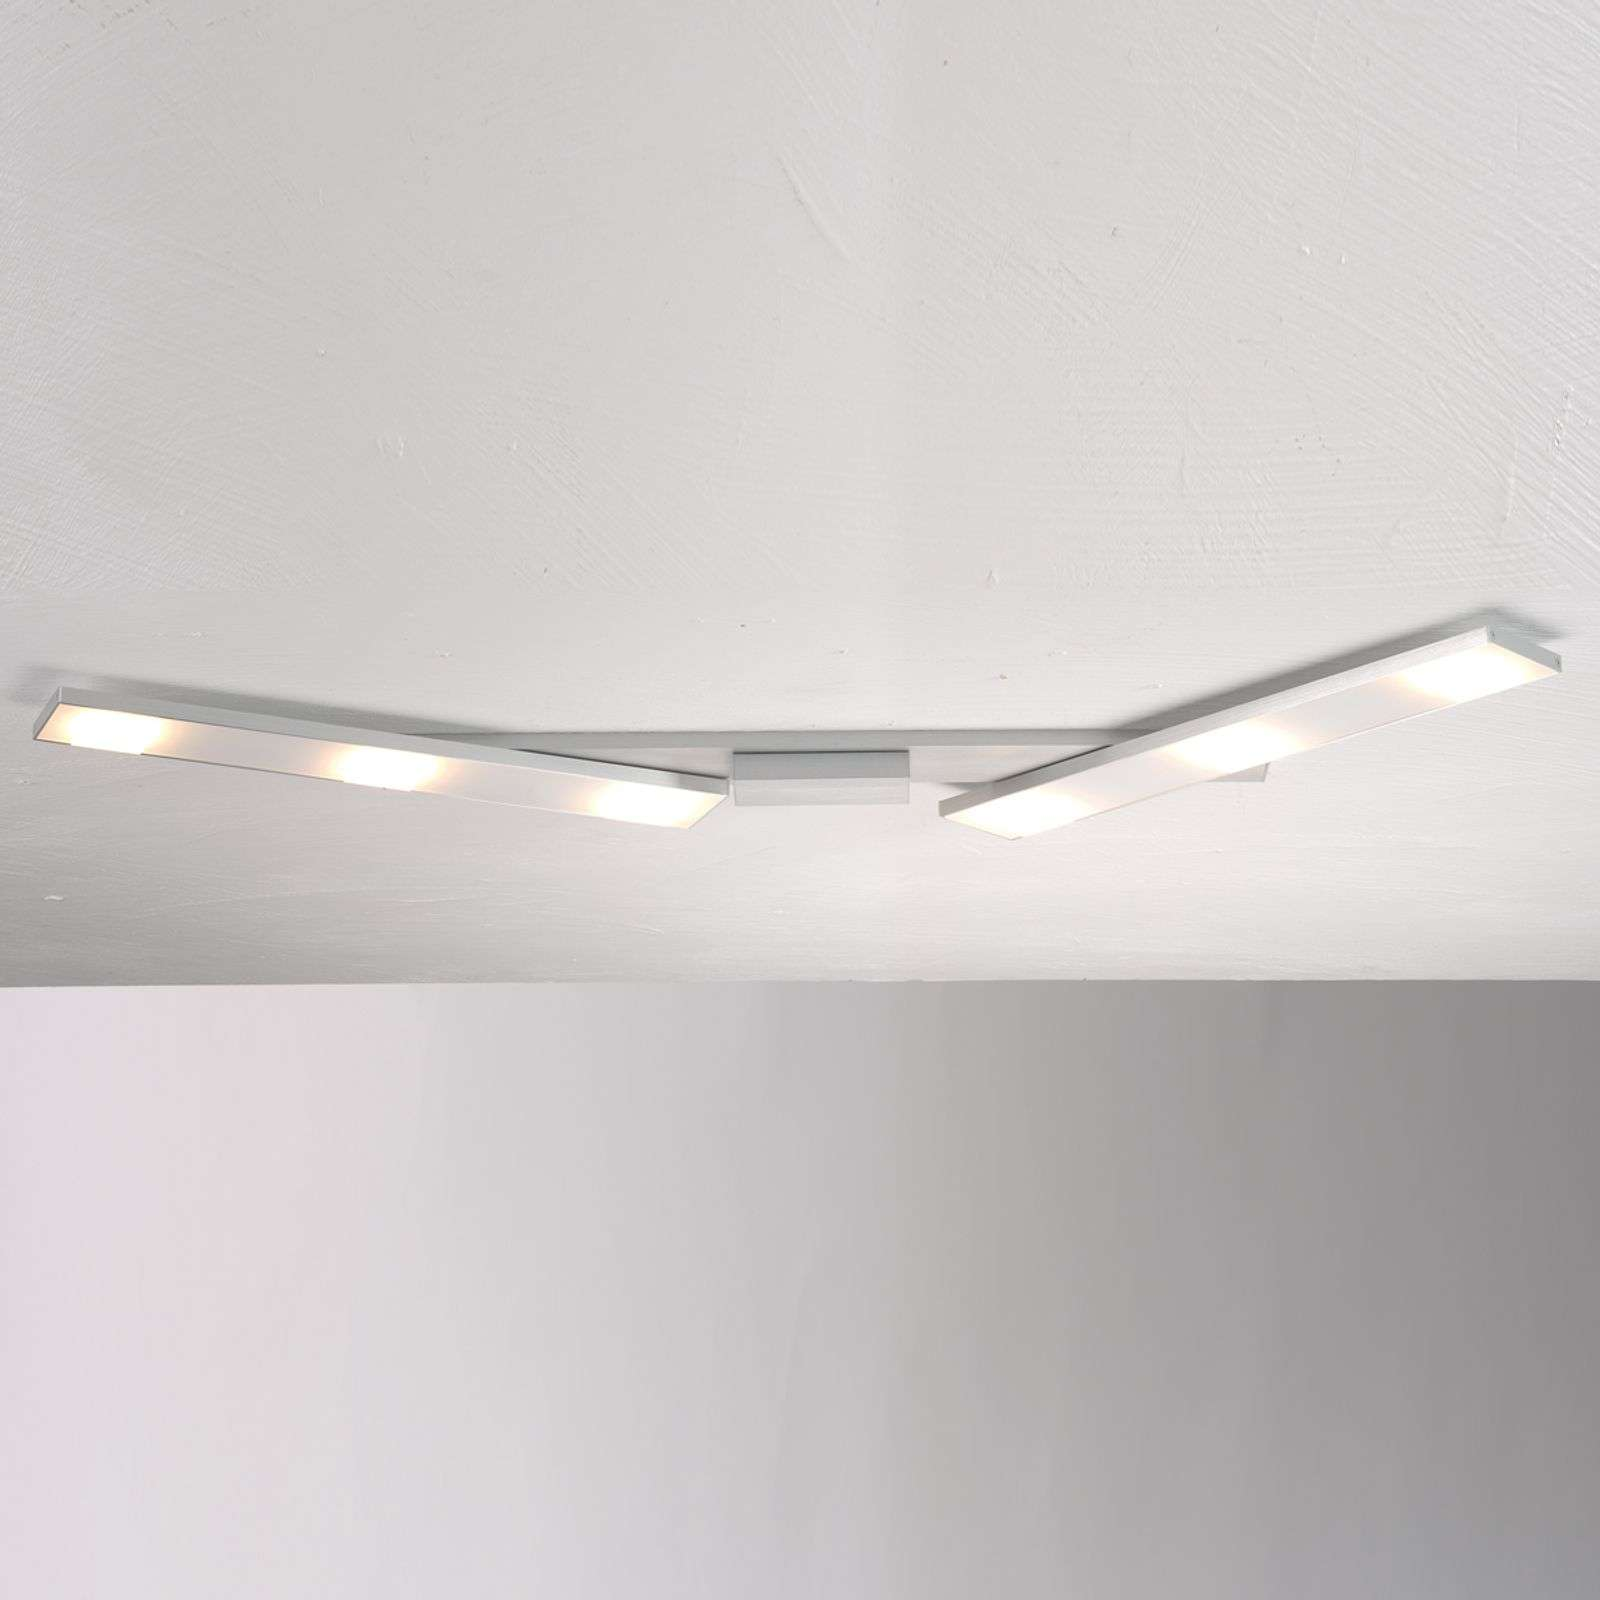 Plafoniera LED Slight orientabile, alluminio